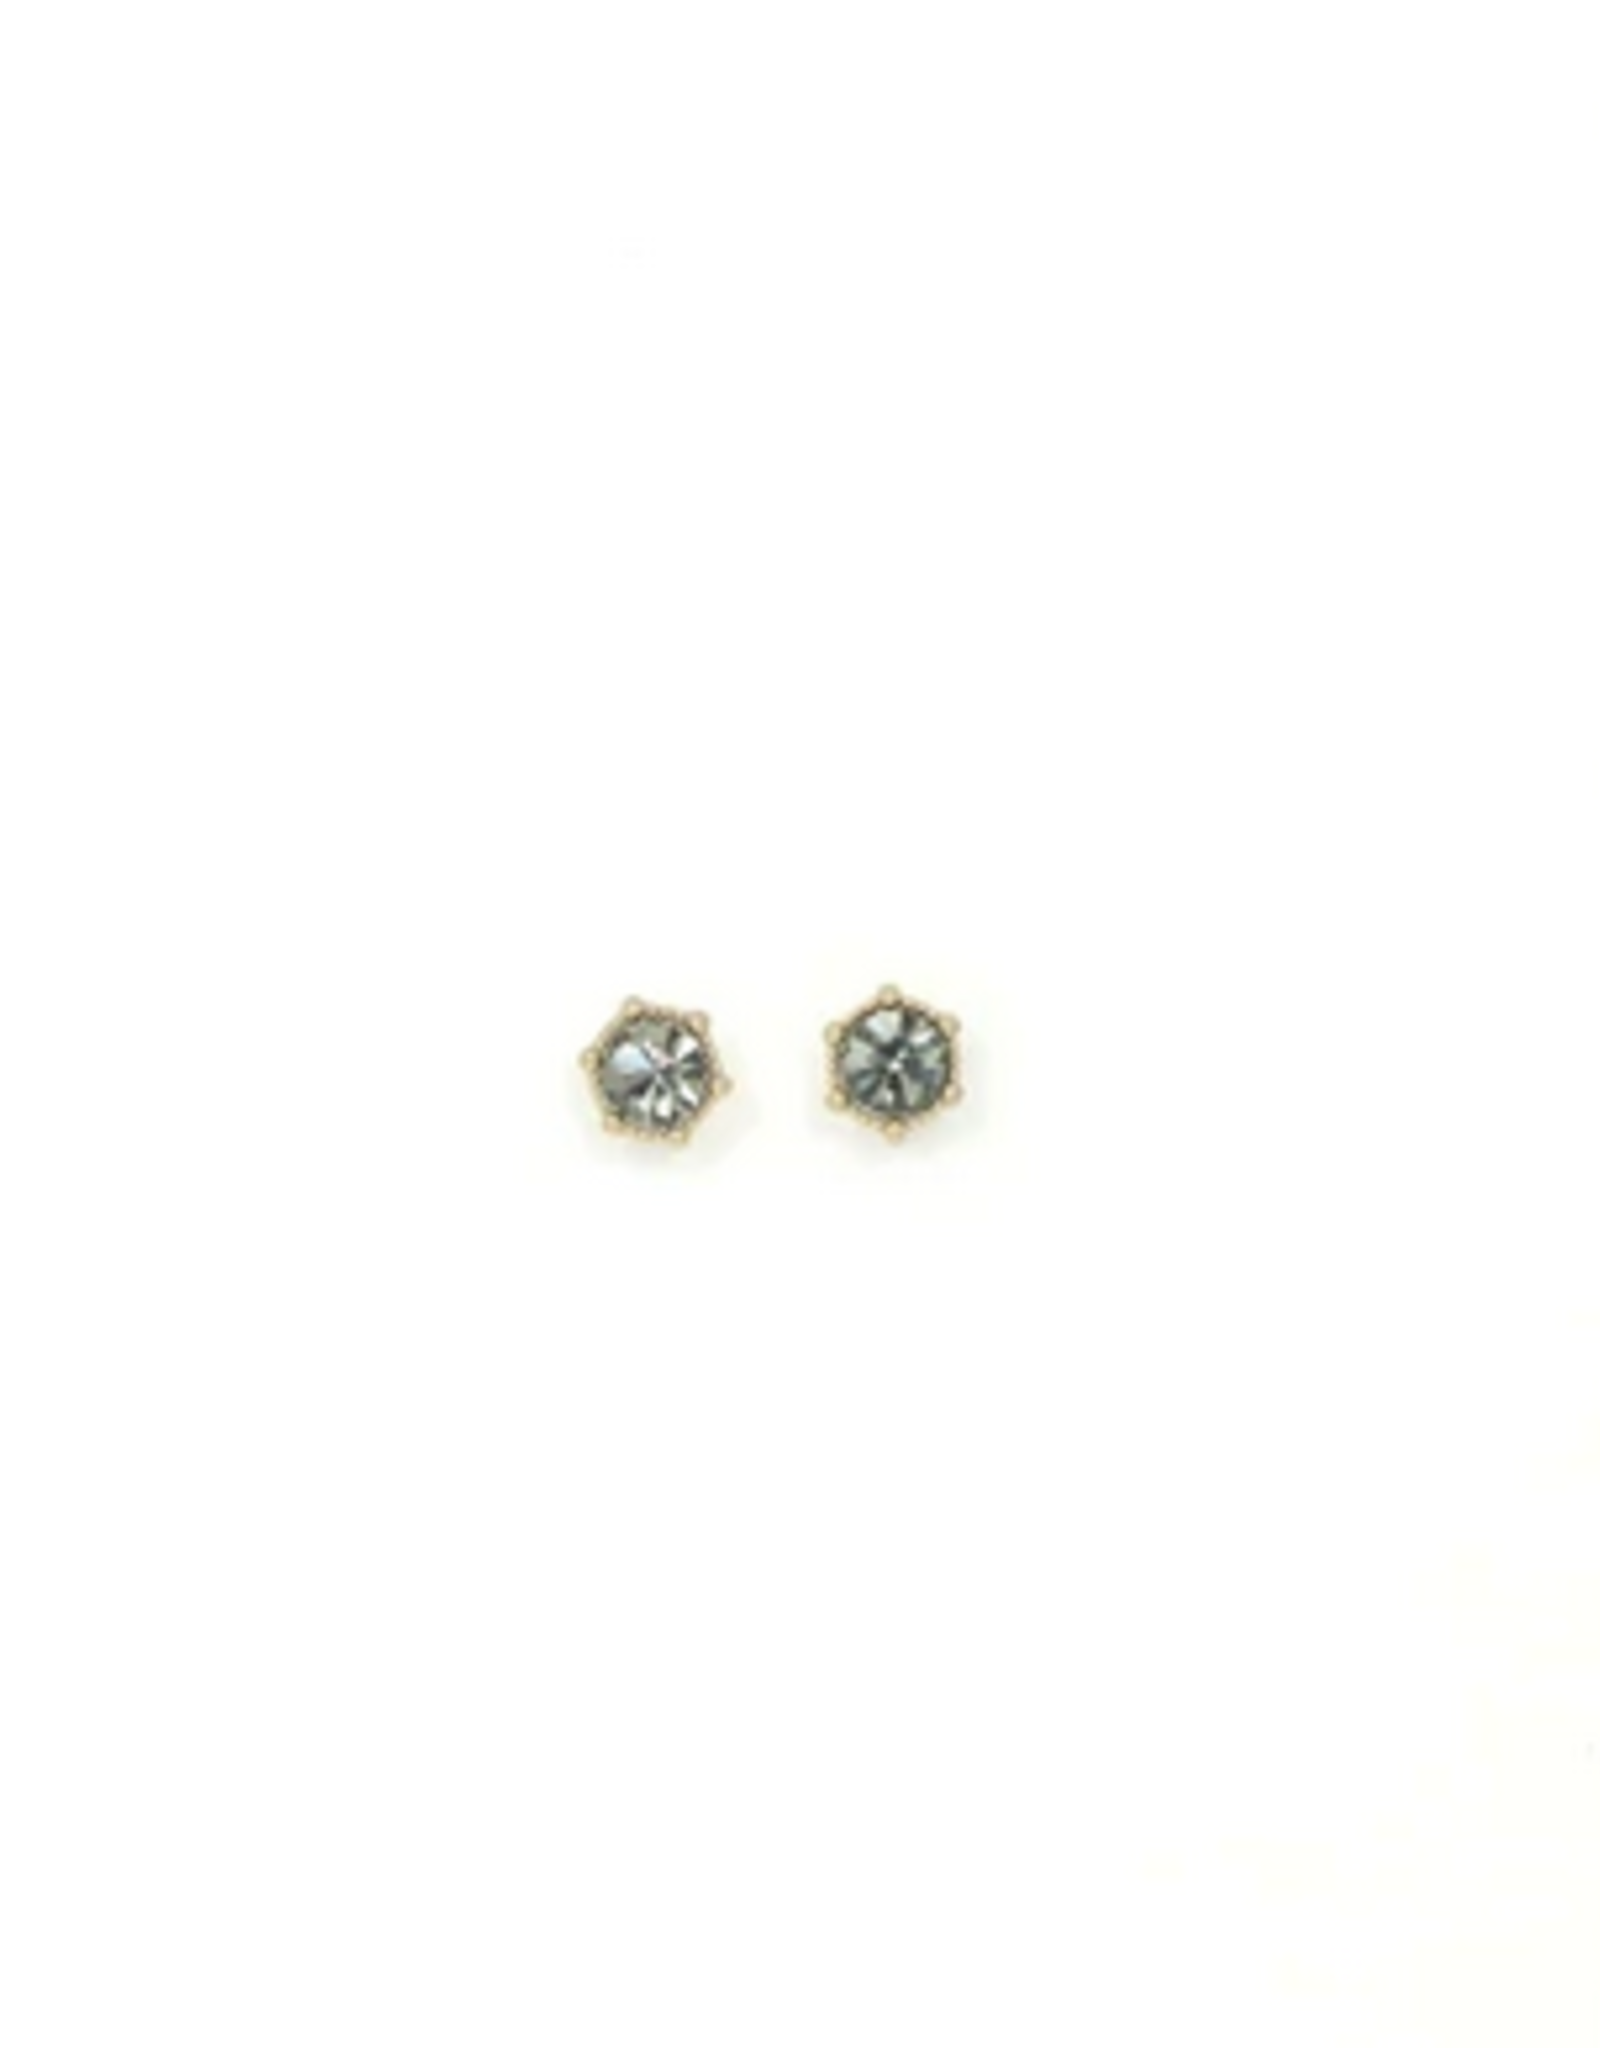 Astrid Earrings Black Diamond Gold Plated Brass with Swarovski Crystals Earrings